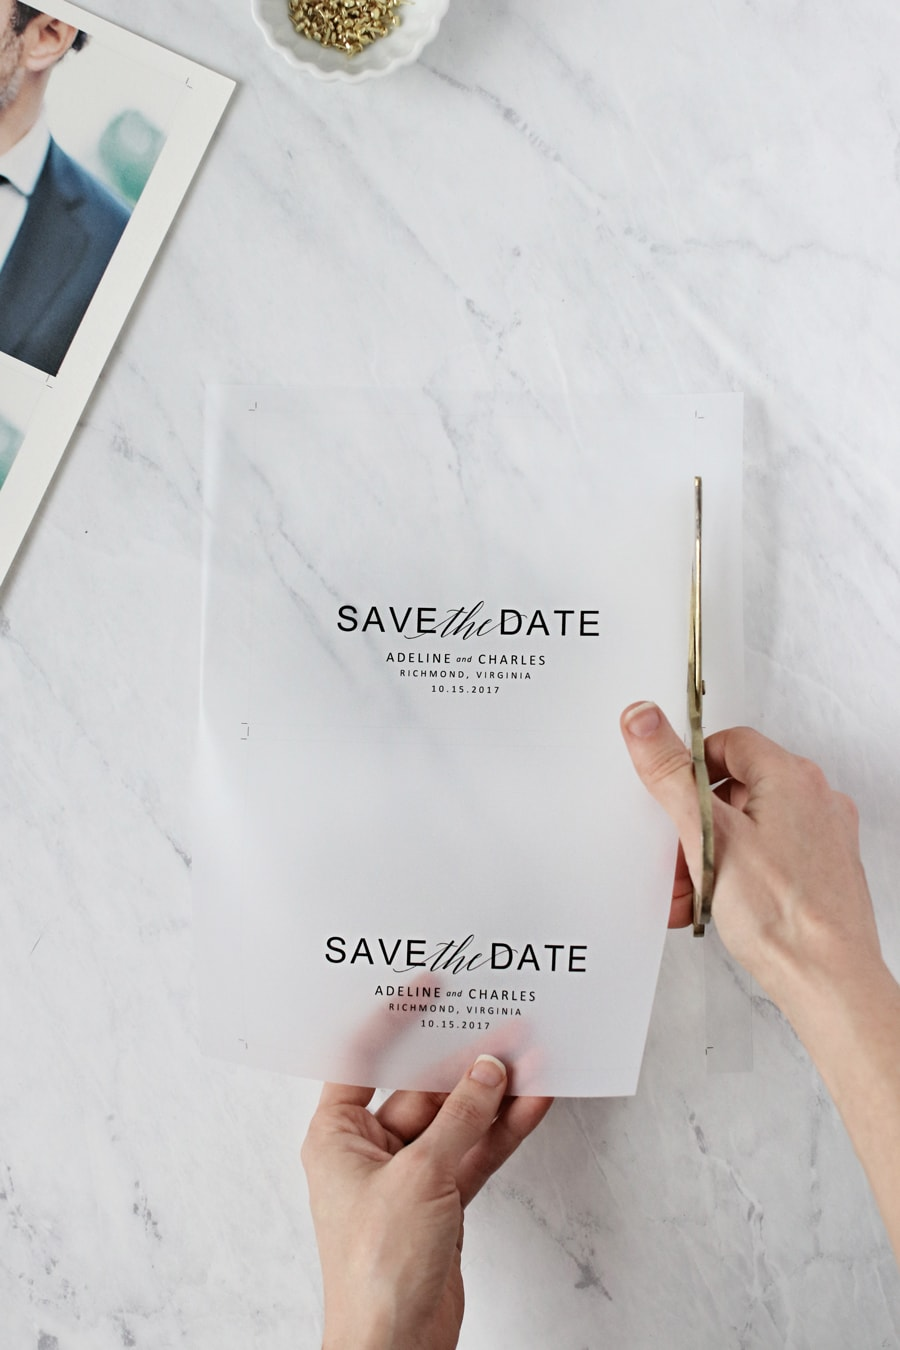 Think you can't make gorgeous save the dates at home? Use one of our free templates to make these vellum save the dates. We promise your guests will love them.